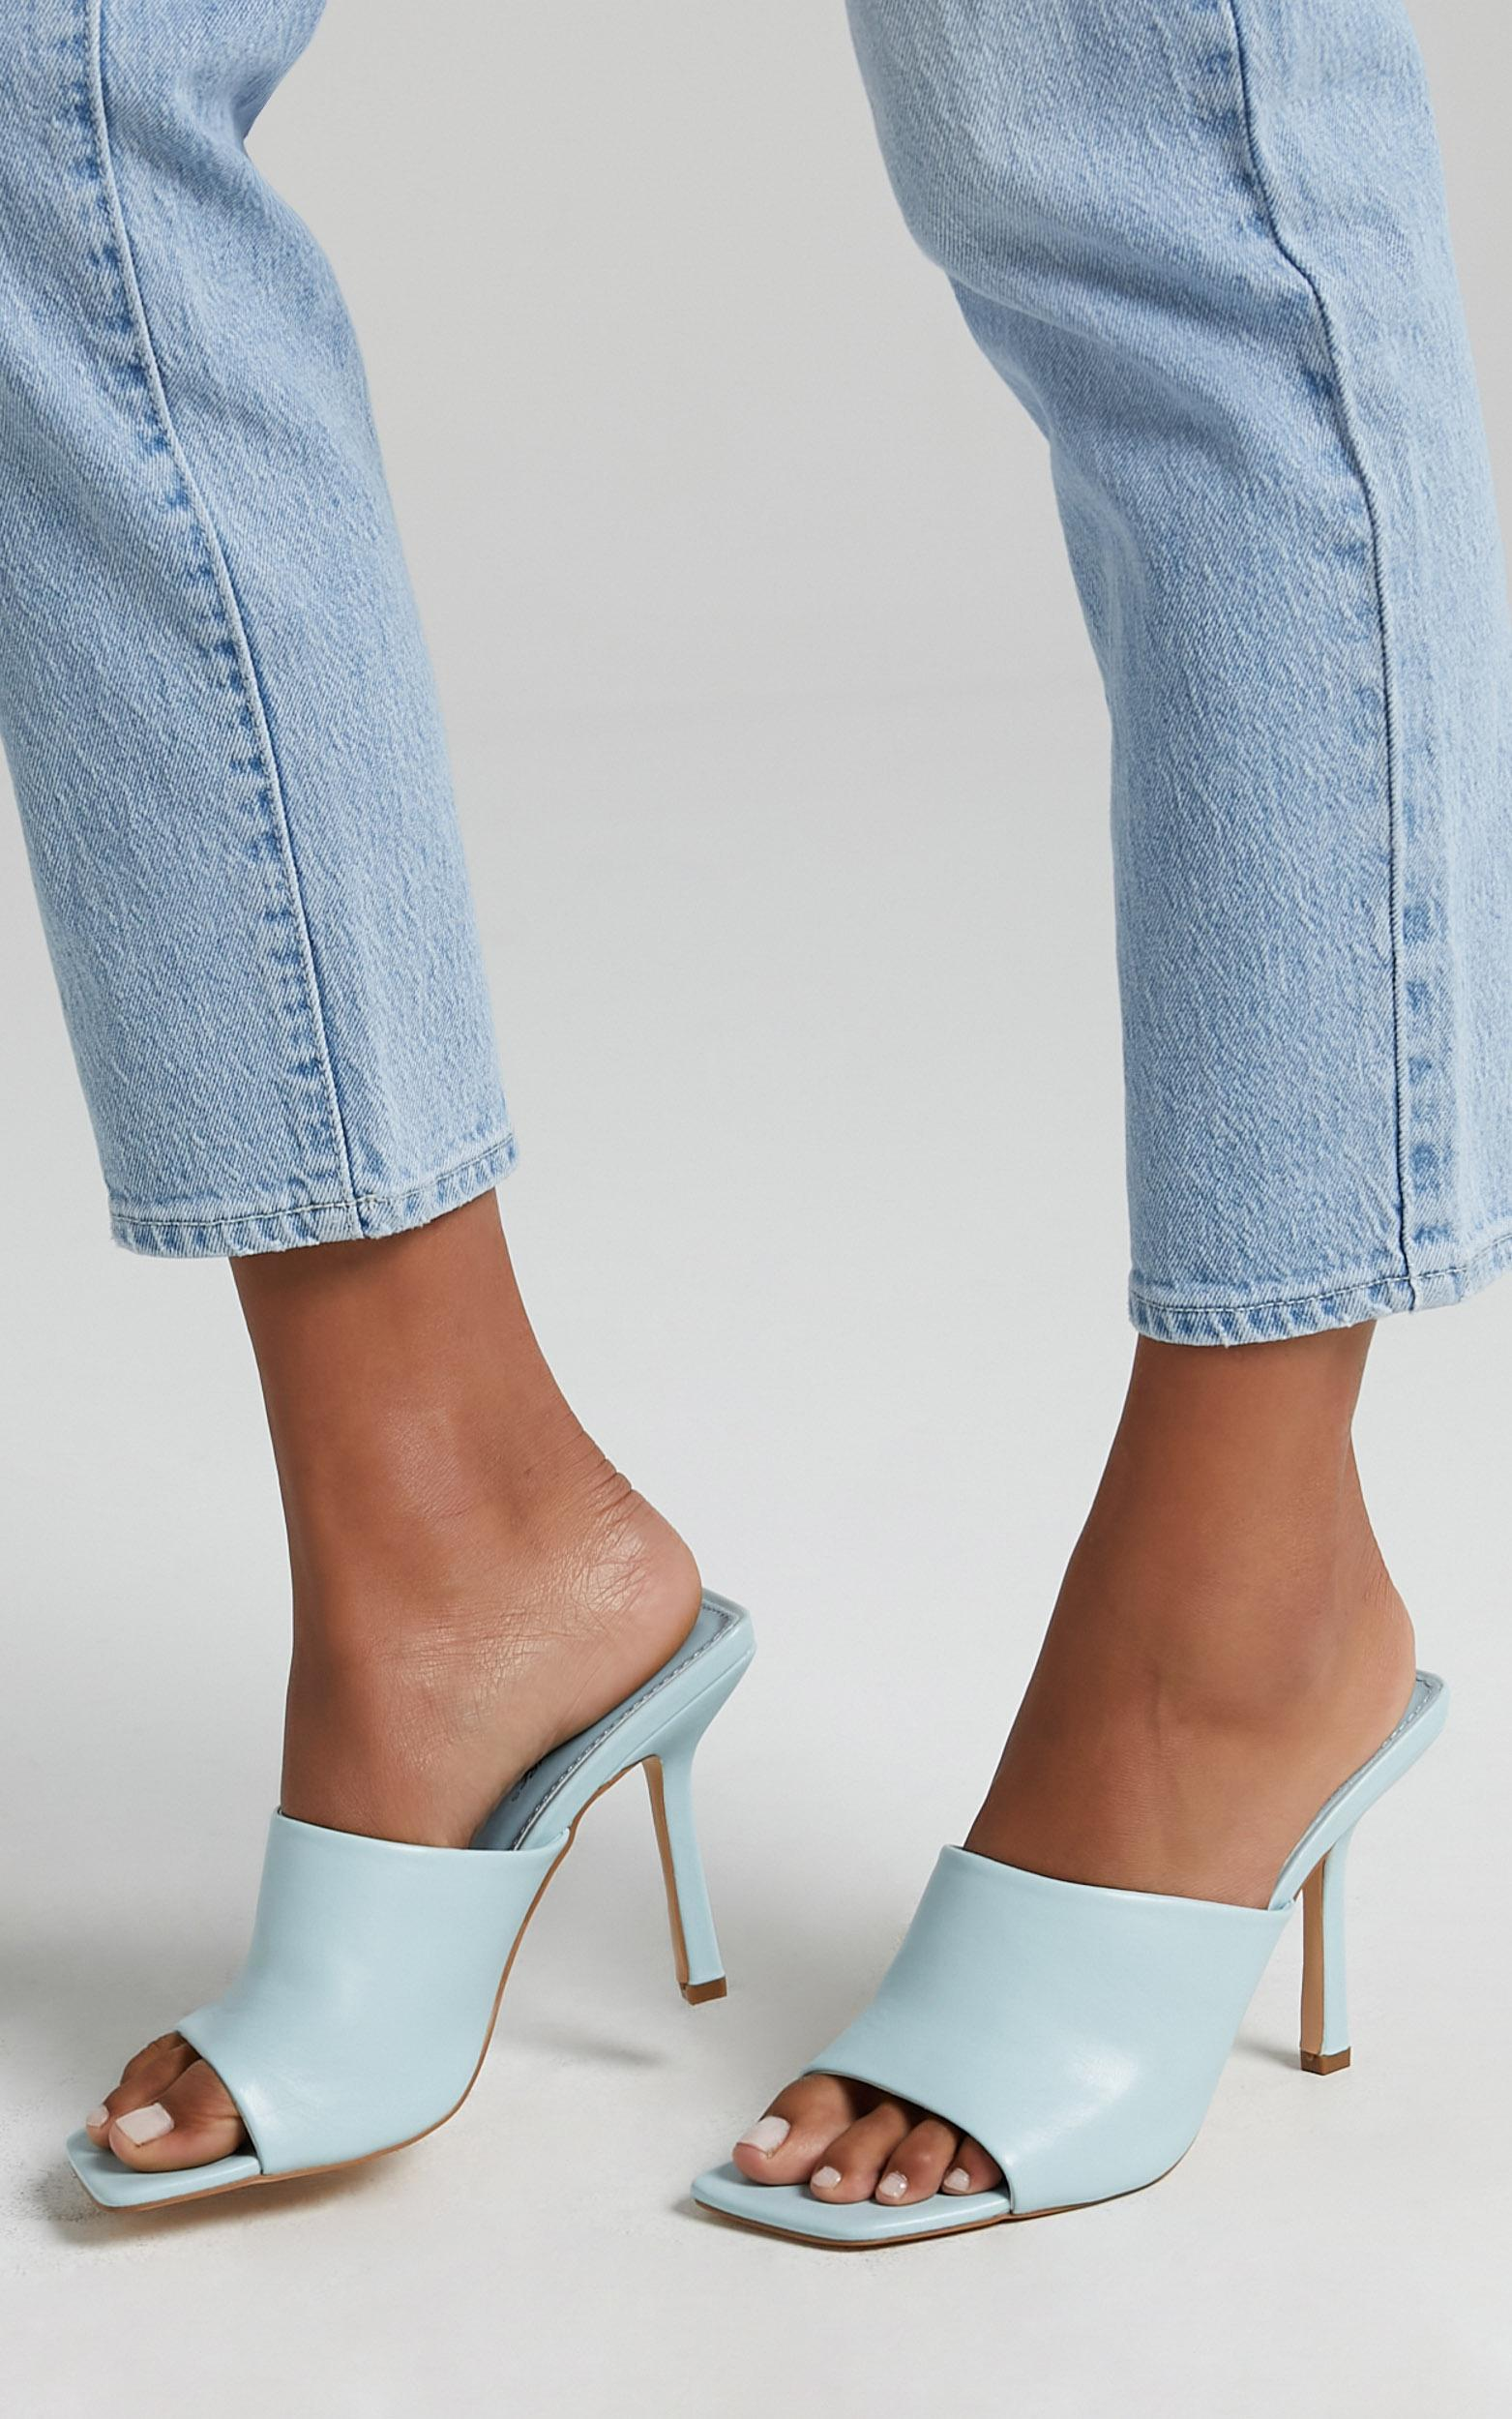 Public Desire - Zavia Heels in Blue PU - 5, Blue, hi-res image number null